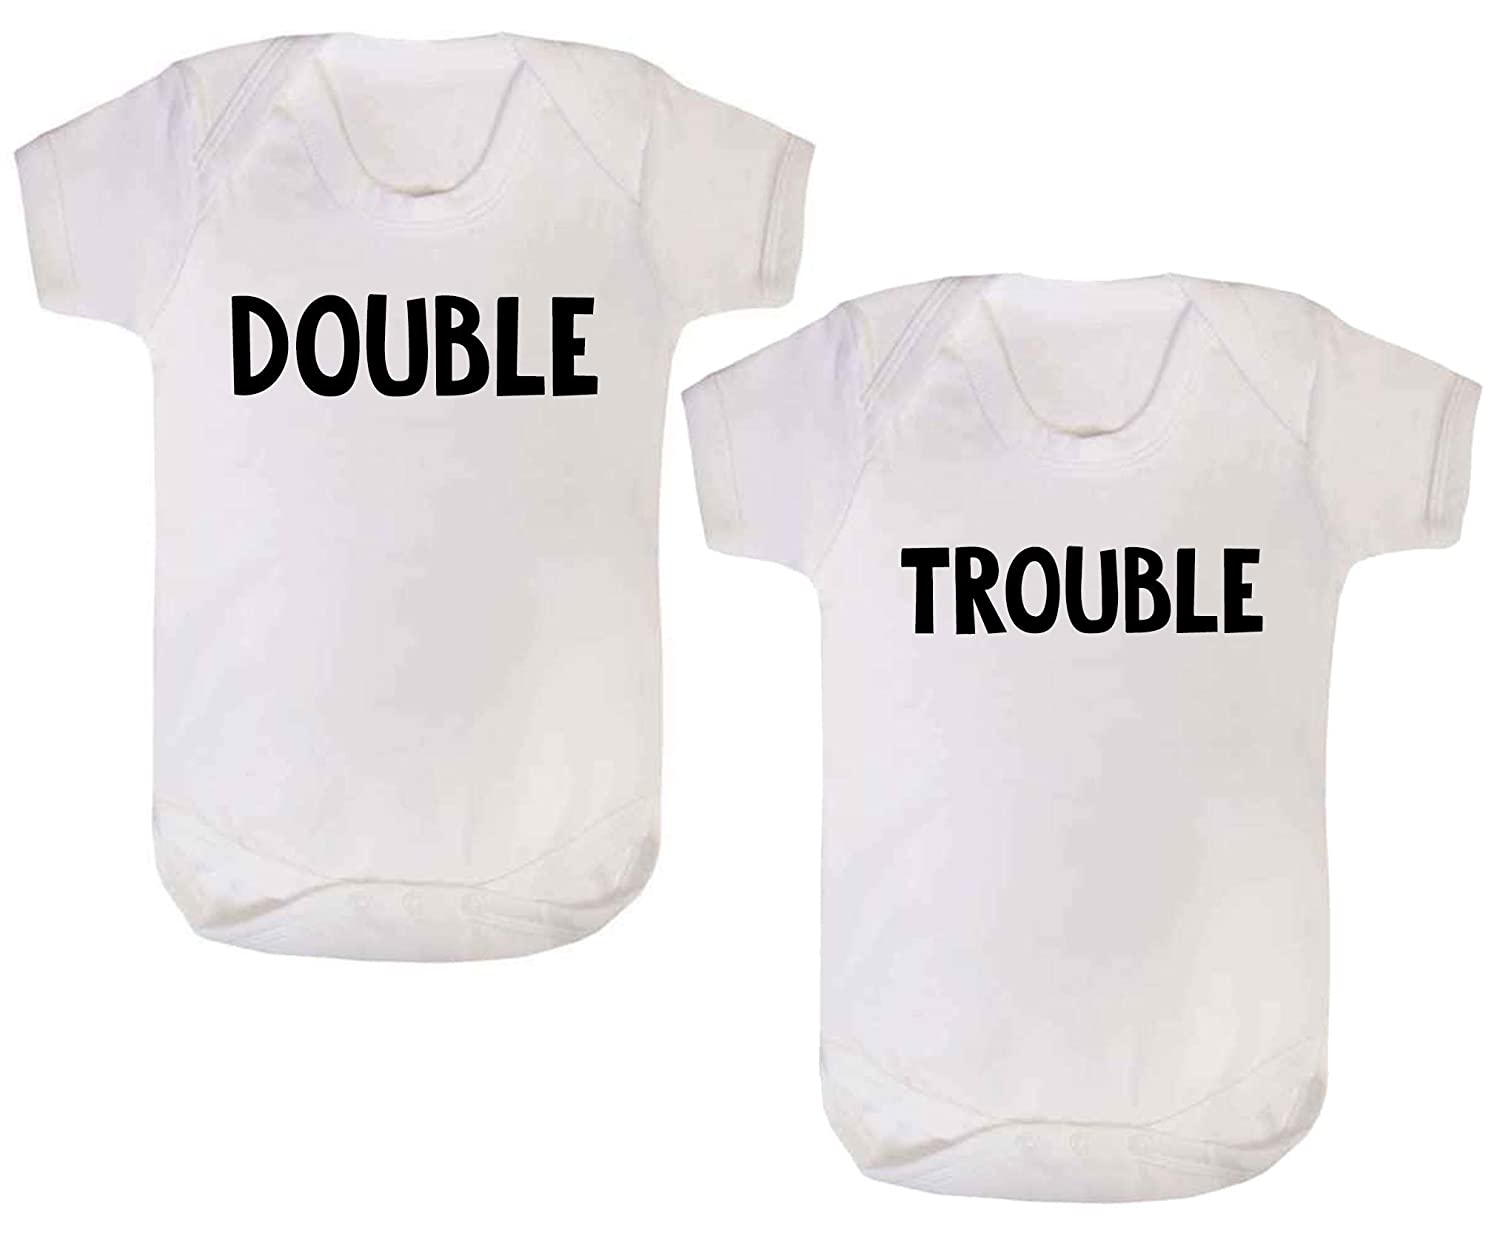 Twins Baby bodysuits Evil Twins Babygrow Vest Pack Of 2 Gifts Presents newborn